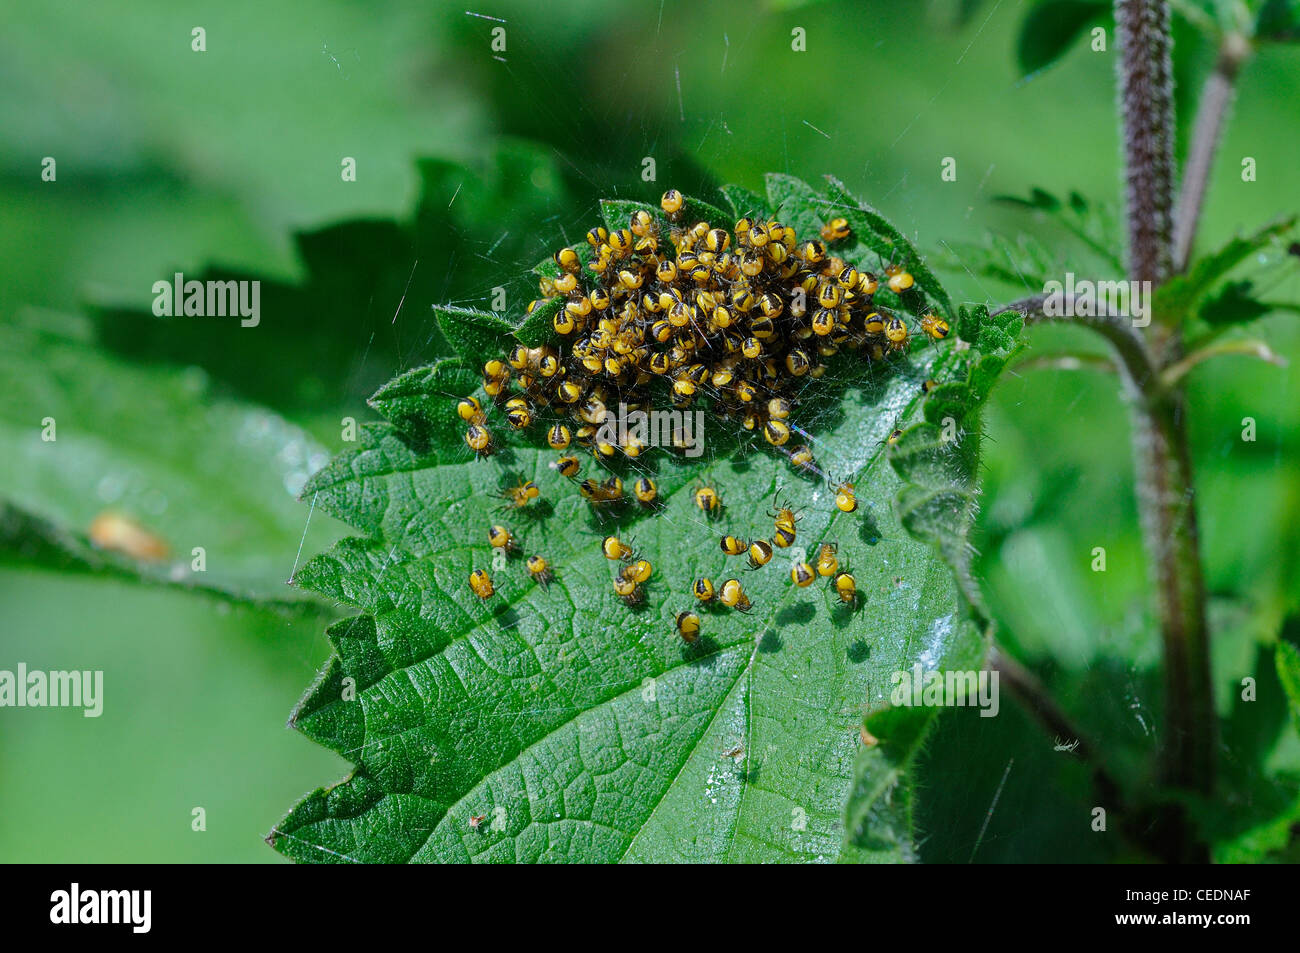 Garden Orb Spider (Araneus diadematus) mass of newly hatched baby spiders, on nettle plant, Kent, UK - Stock Image